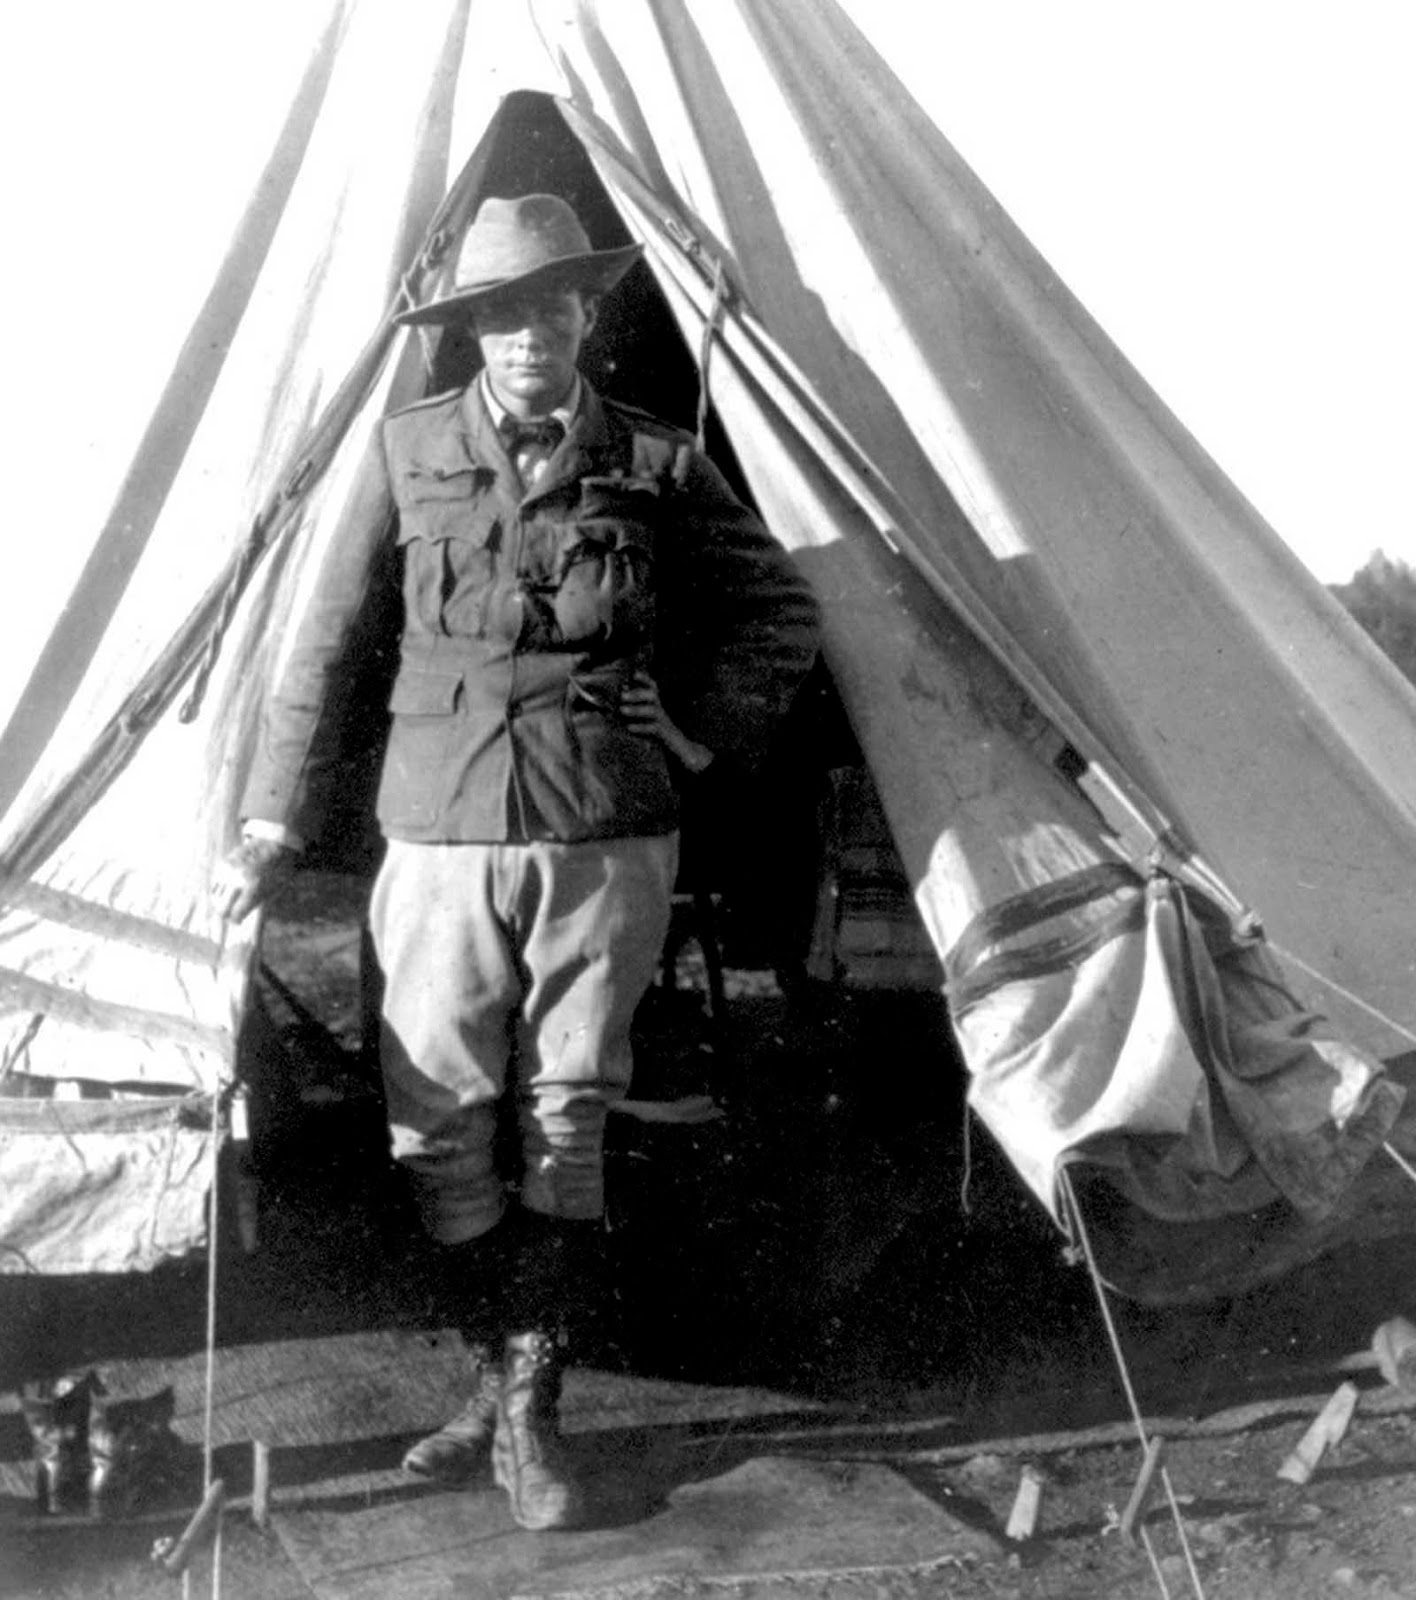 Churchill standing at the opening of his tent as a war correspondent during the Second Boer War, in Bloemfontein, South Africa.